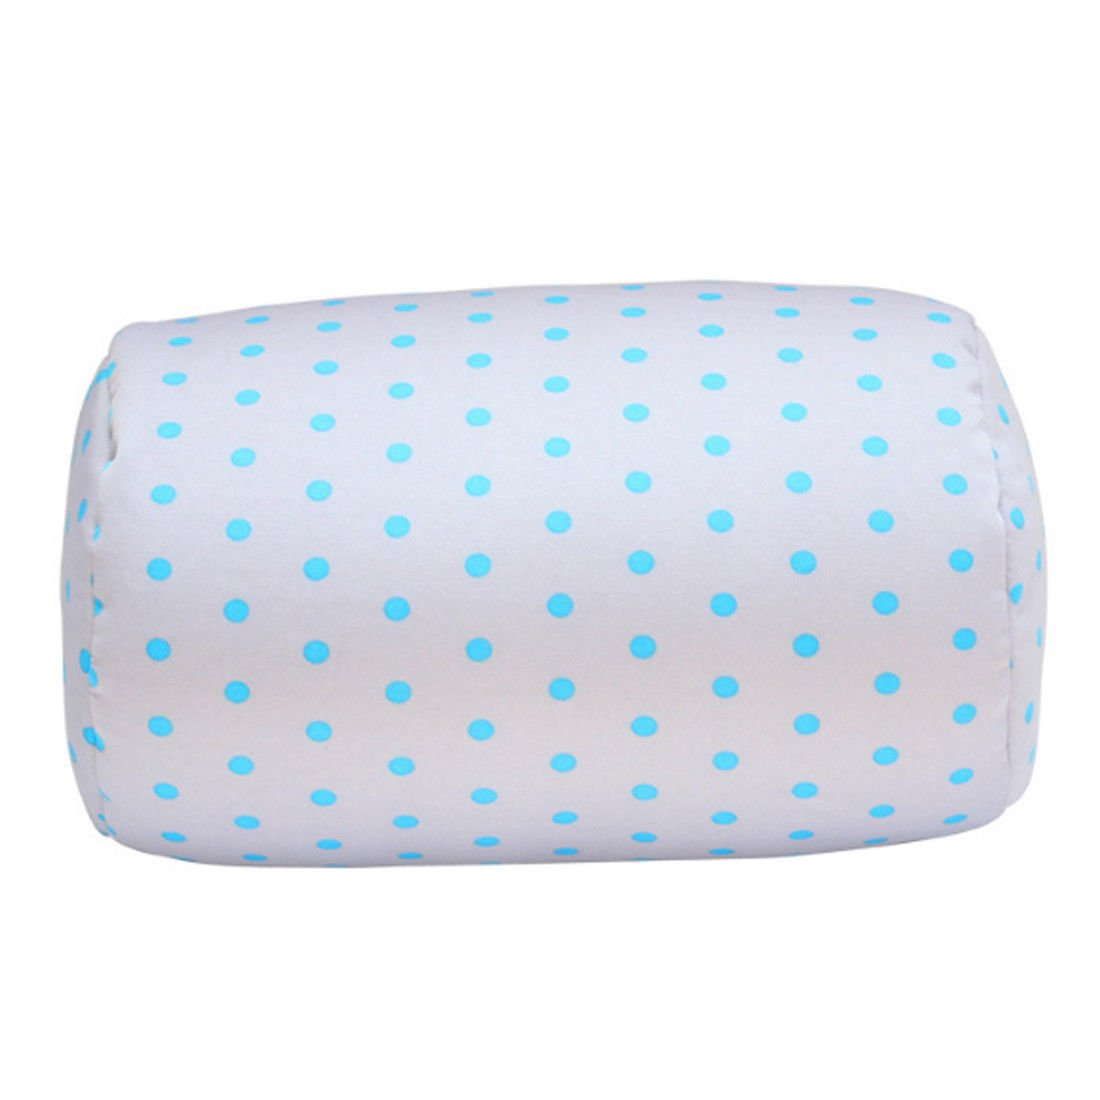 """Bookishbunny Home Office Chair Car Seat Cushion Micro Bead Roll Pillow 7"""" x 12"""" Head Neck Back Body Comfort (Blue Dot)"""